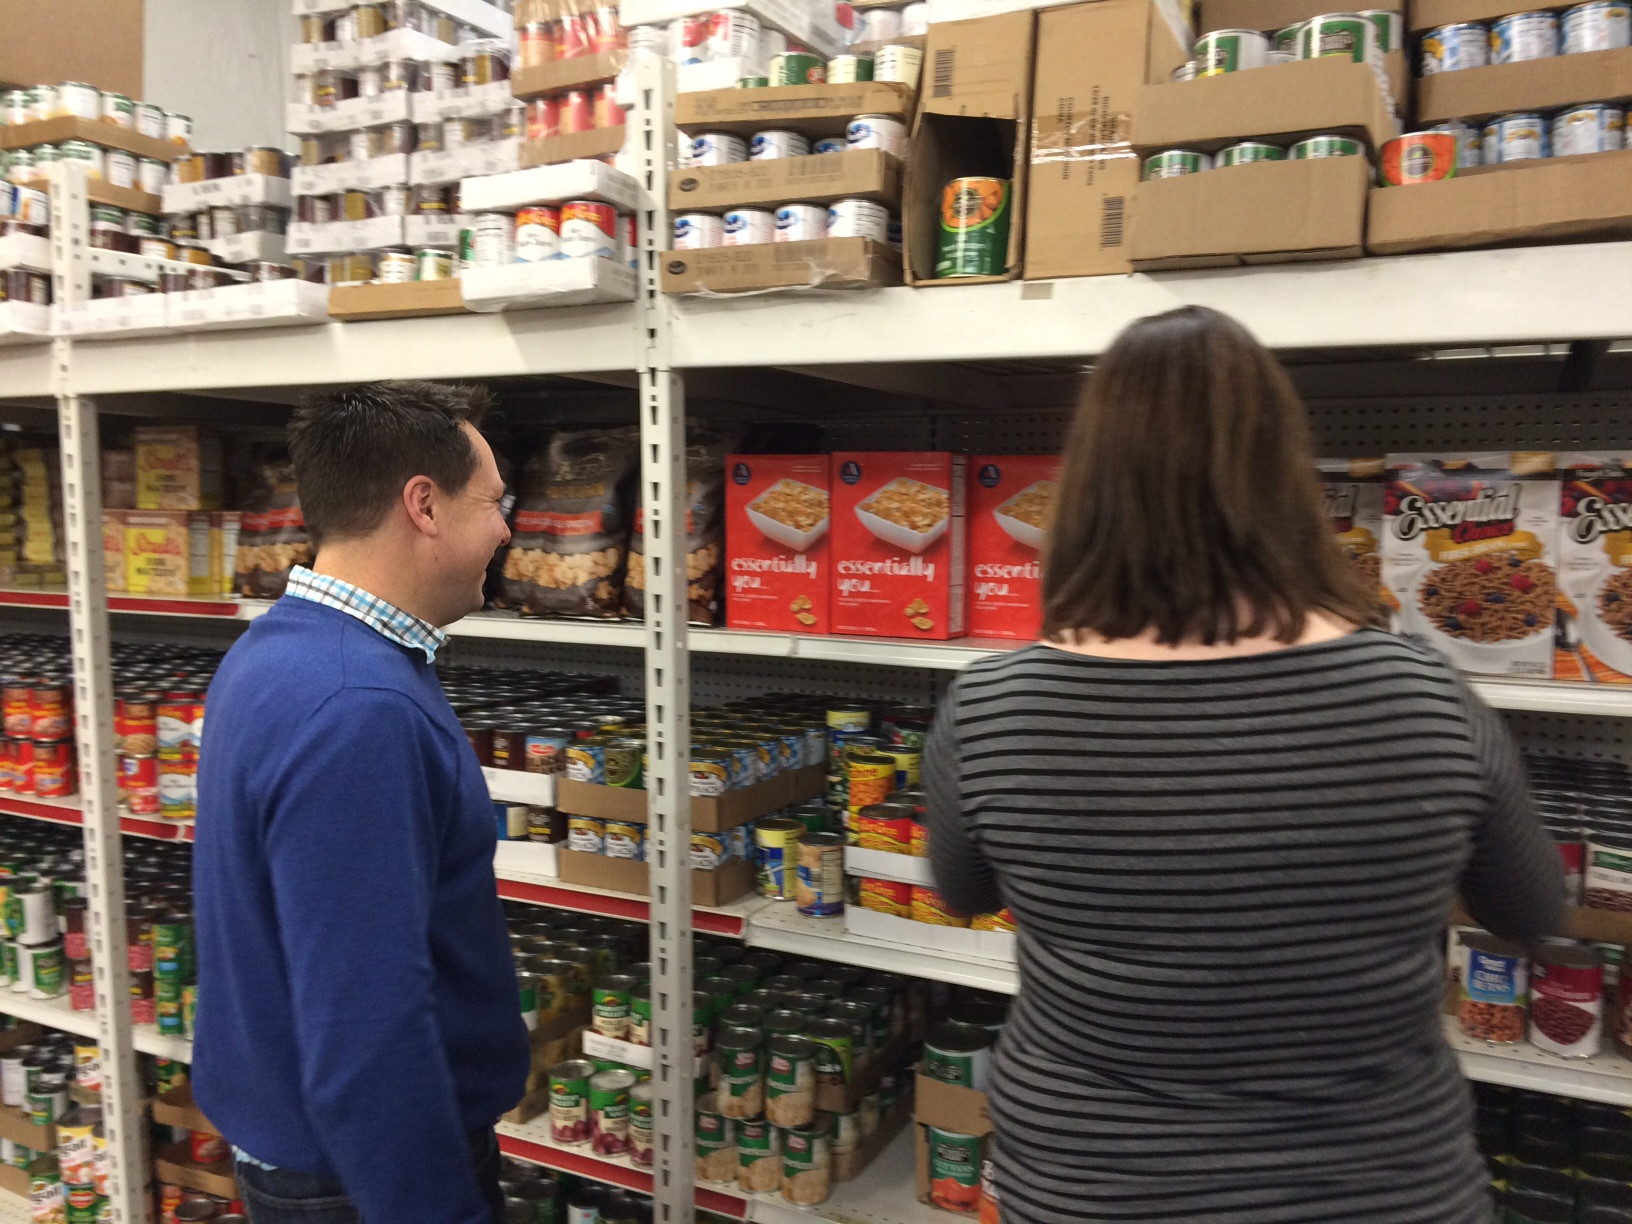 Best ideas about River Food Pantry . Save or Pin Helping the Hungry at The River Food Pantry Now.